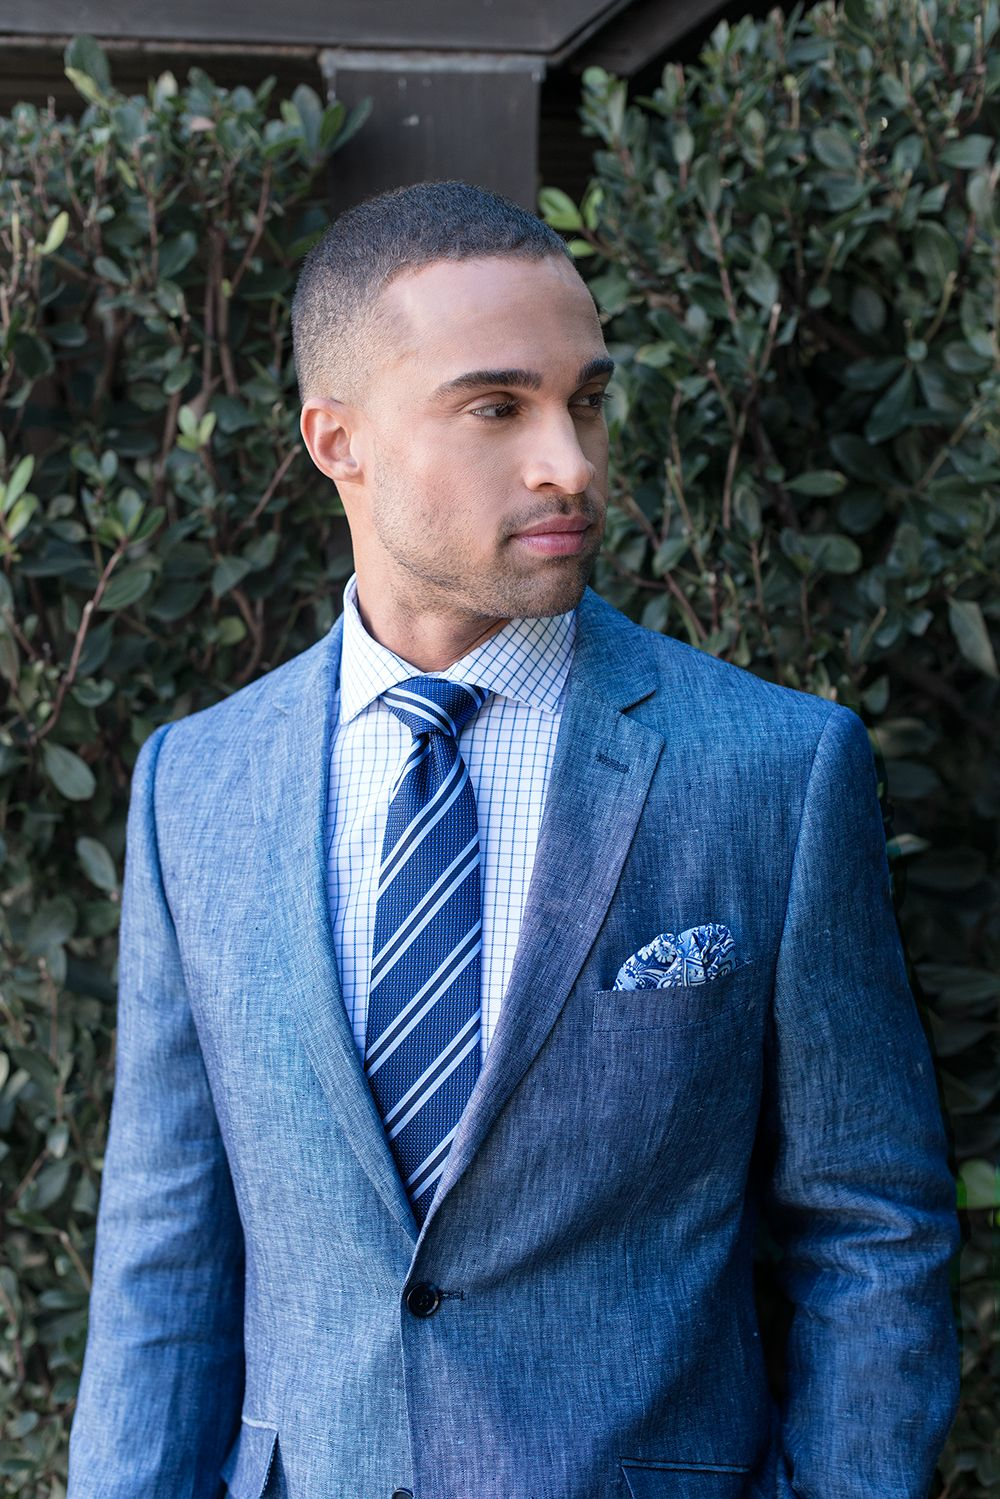 97149456a46adb Ladies do love a man in a suit. Bachrach linen suit will keep your body  ventilated.